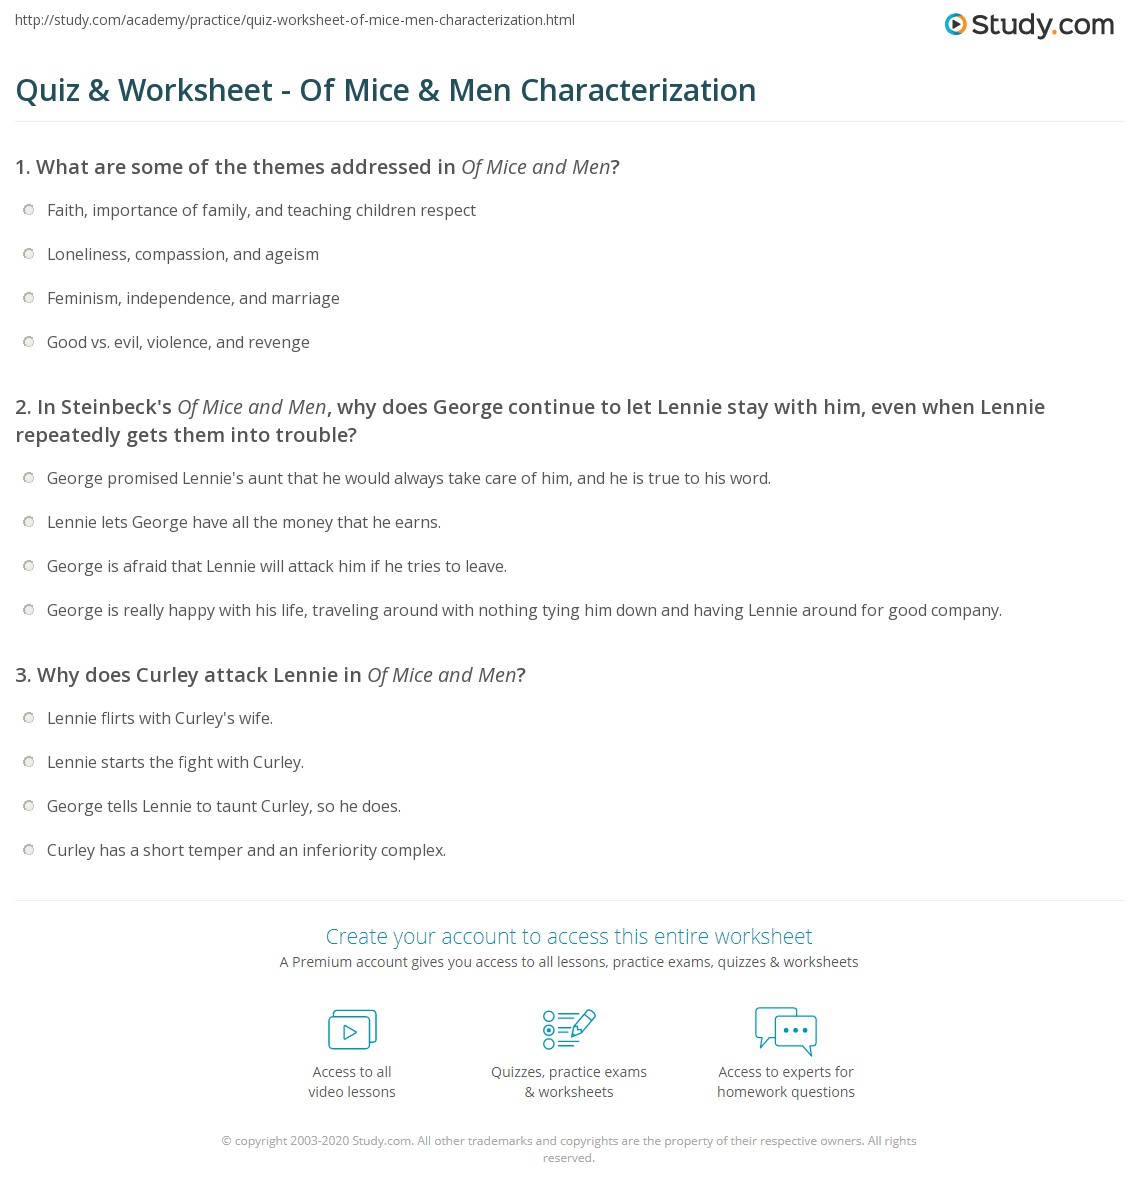 quiz worksheet of mice men characterization com print characterization in of mice men worksheet